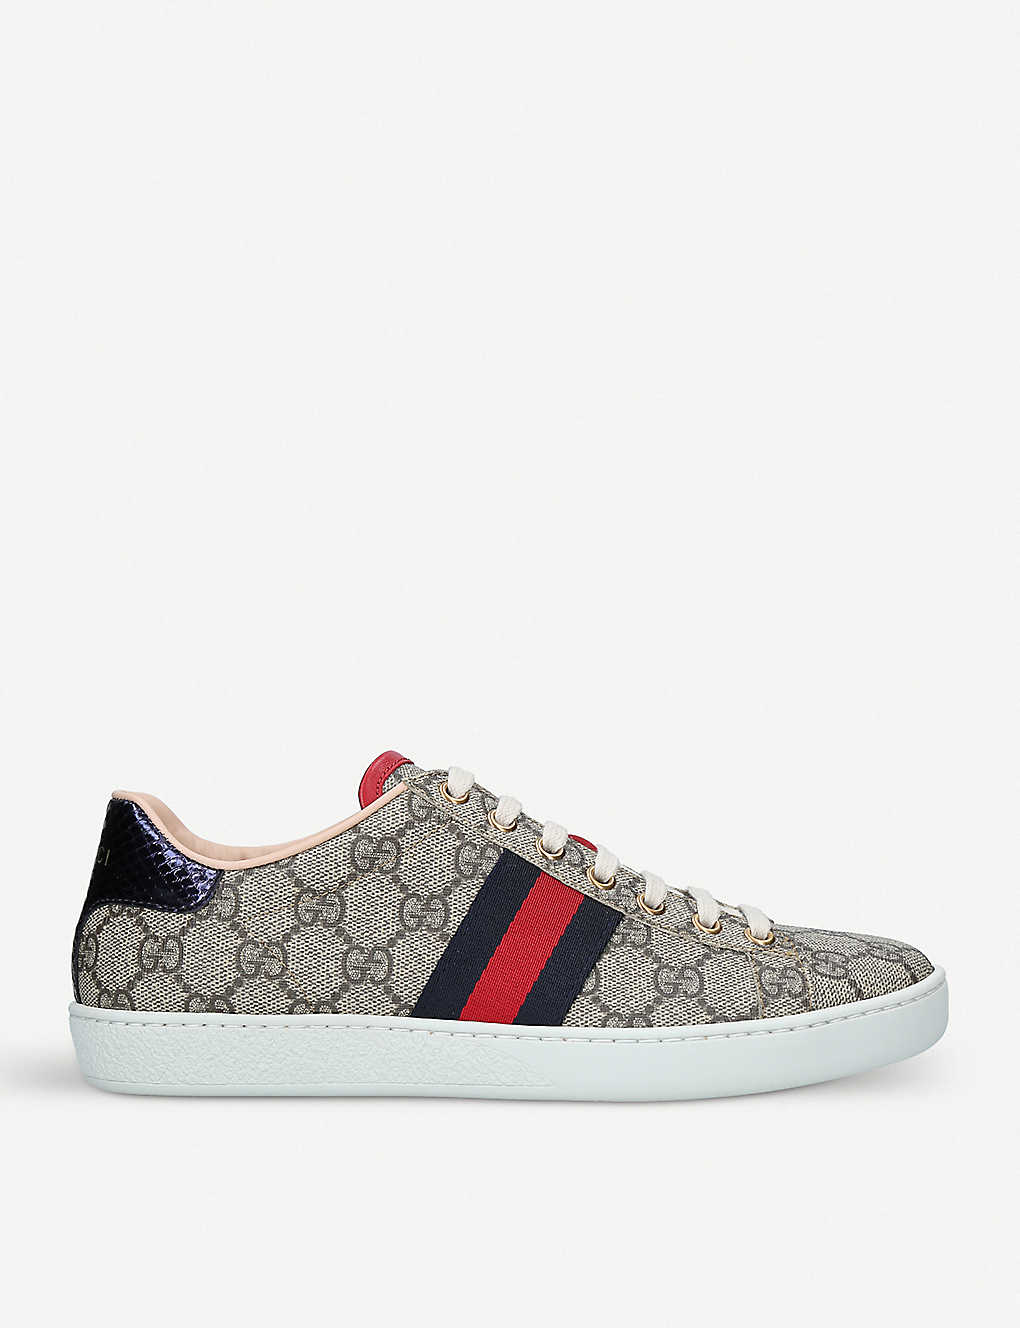 5e81c01c1 GUCCI - New Ace GG Supreme canvas trainers | Selfridges.com